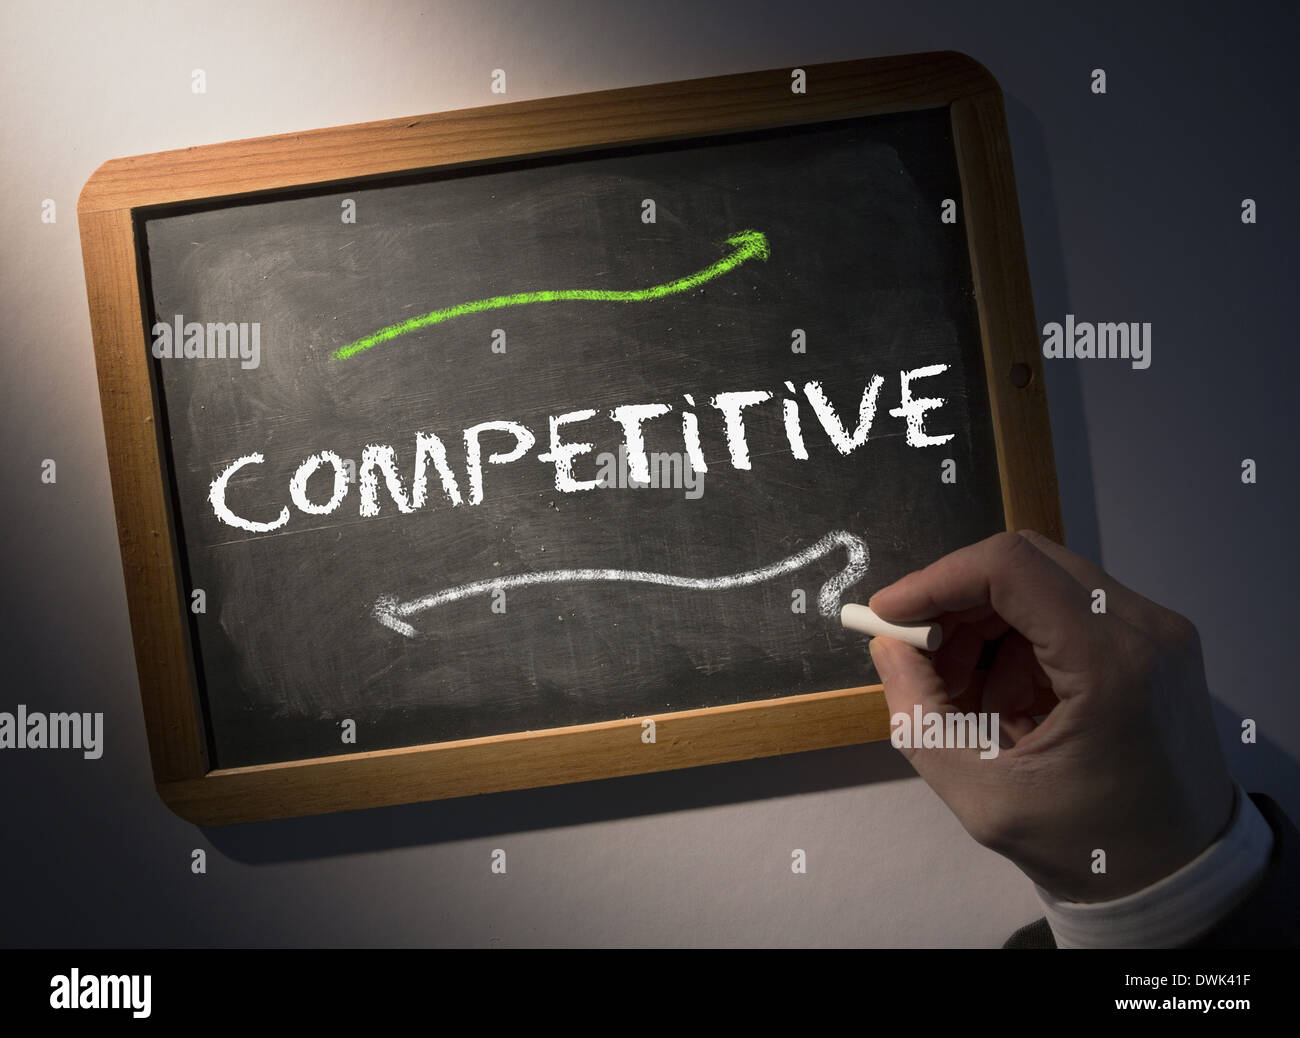 Hand writing on chalkboard concurrentiel Photo Stock